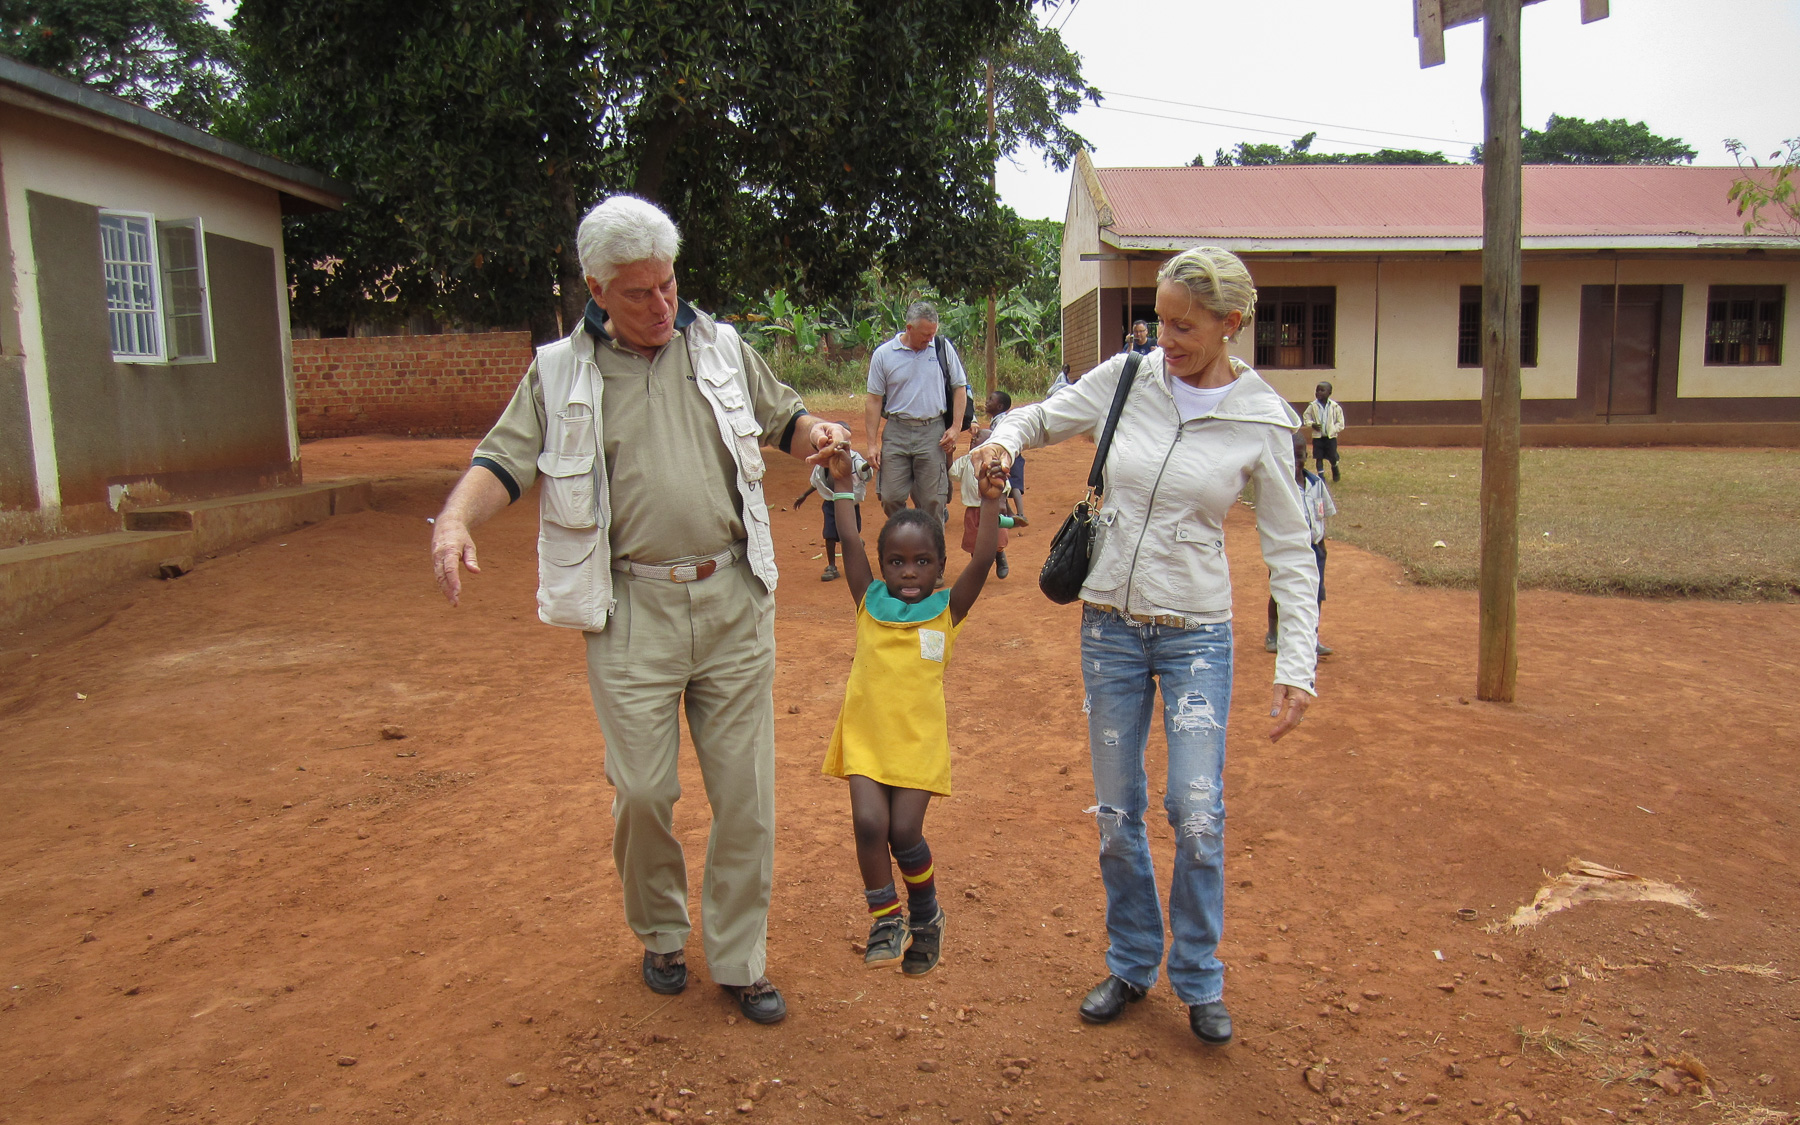 Photo of Dr. Wentz and Prudence in Malawi